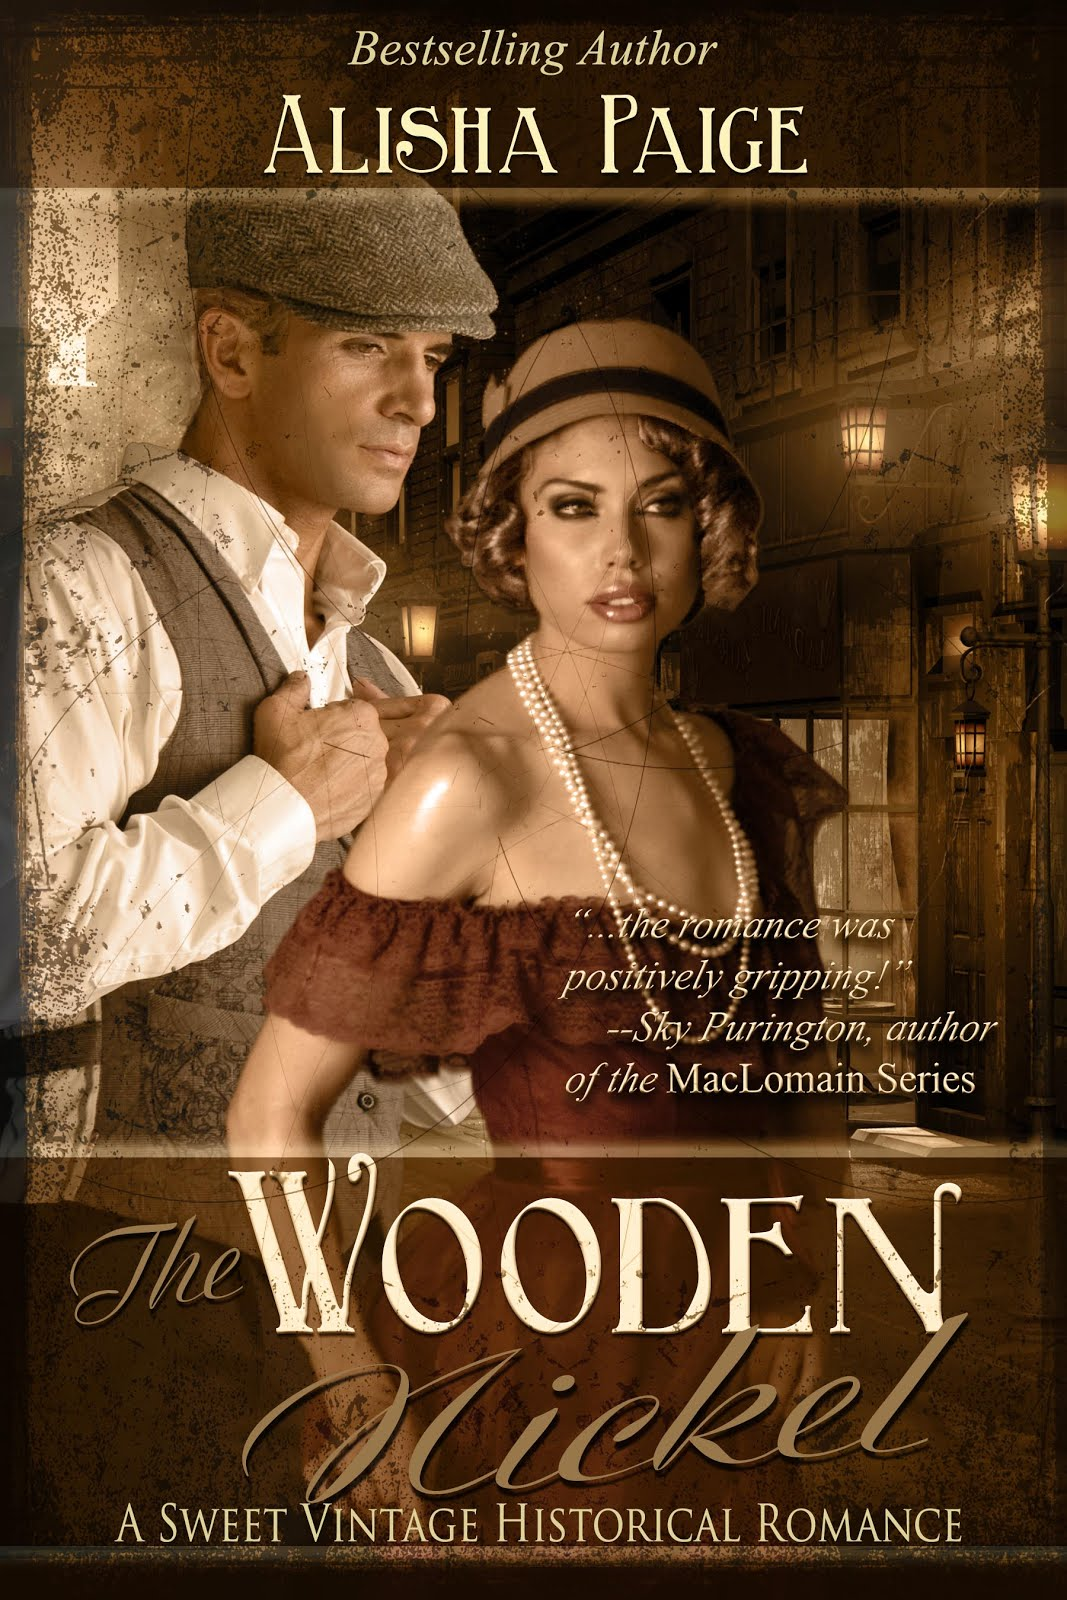 Full Length Epic Historical Romance set during The Great Depression and the Holocaust